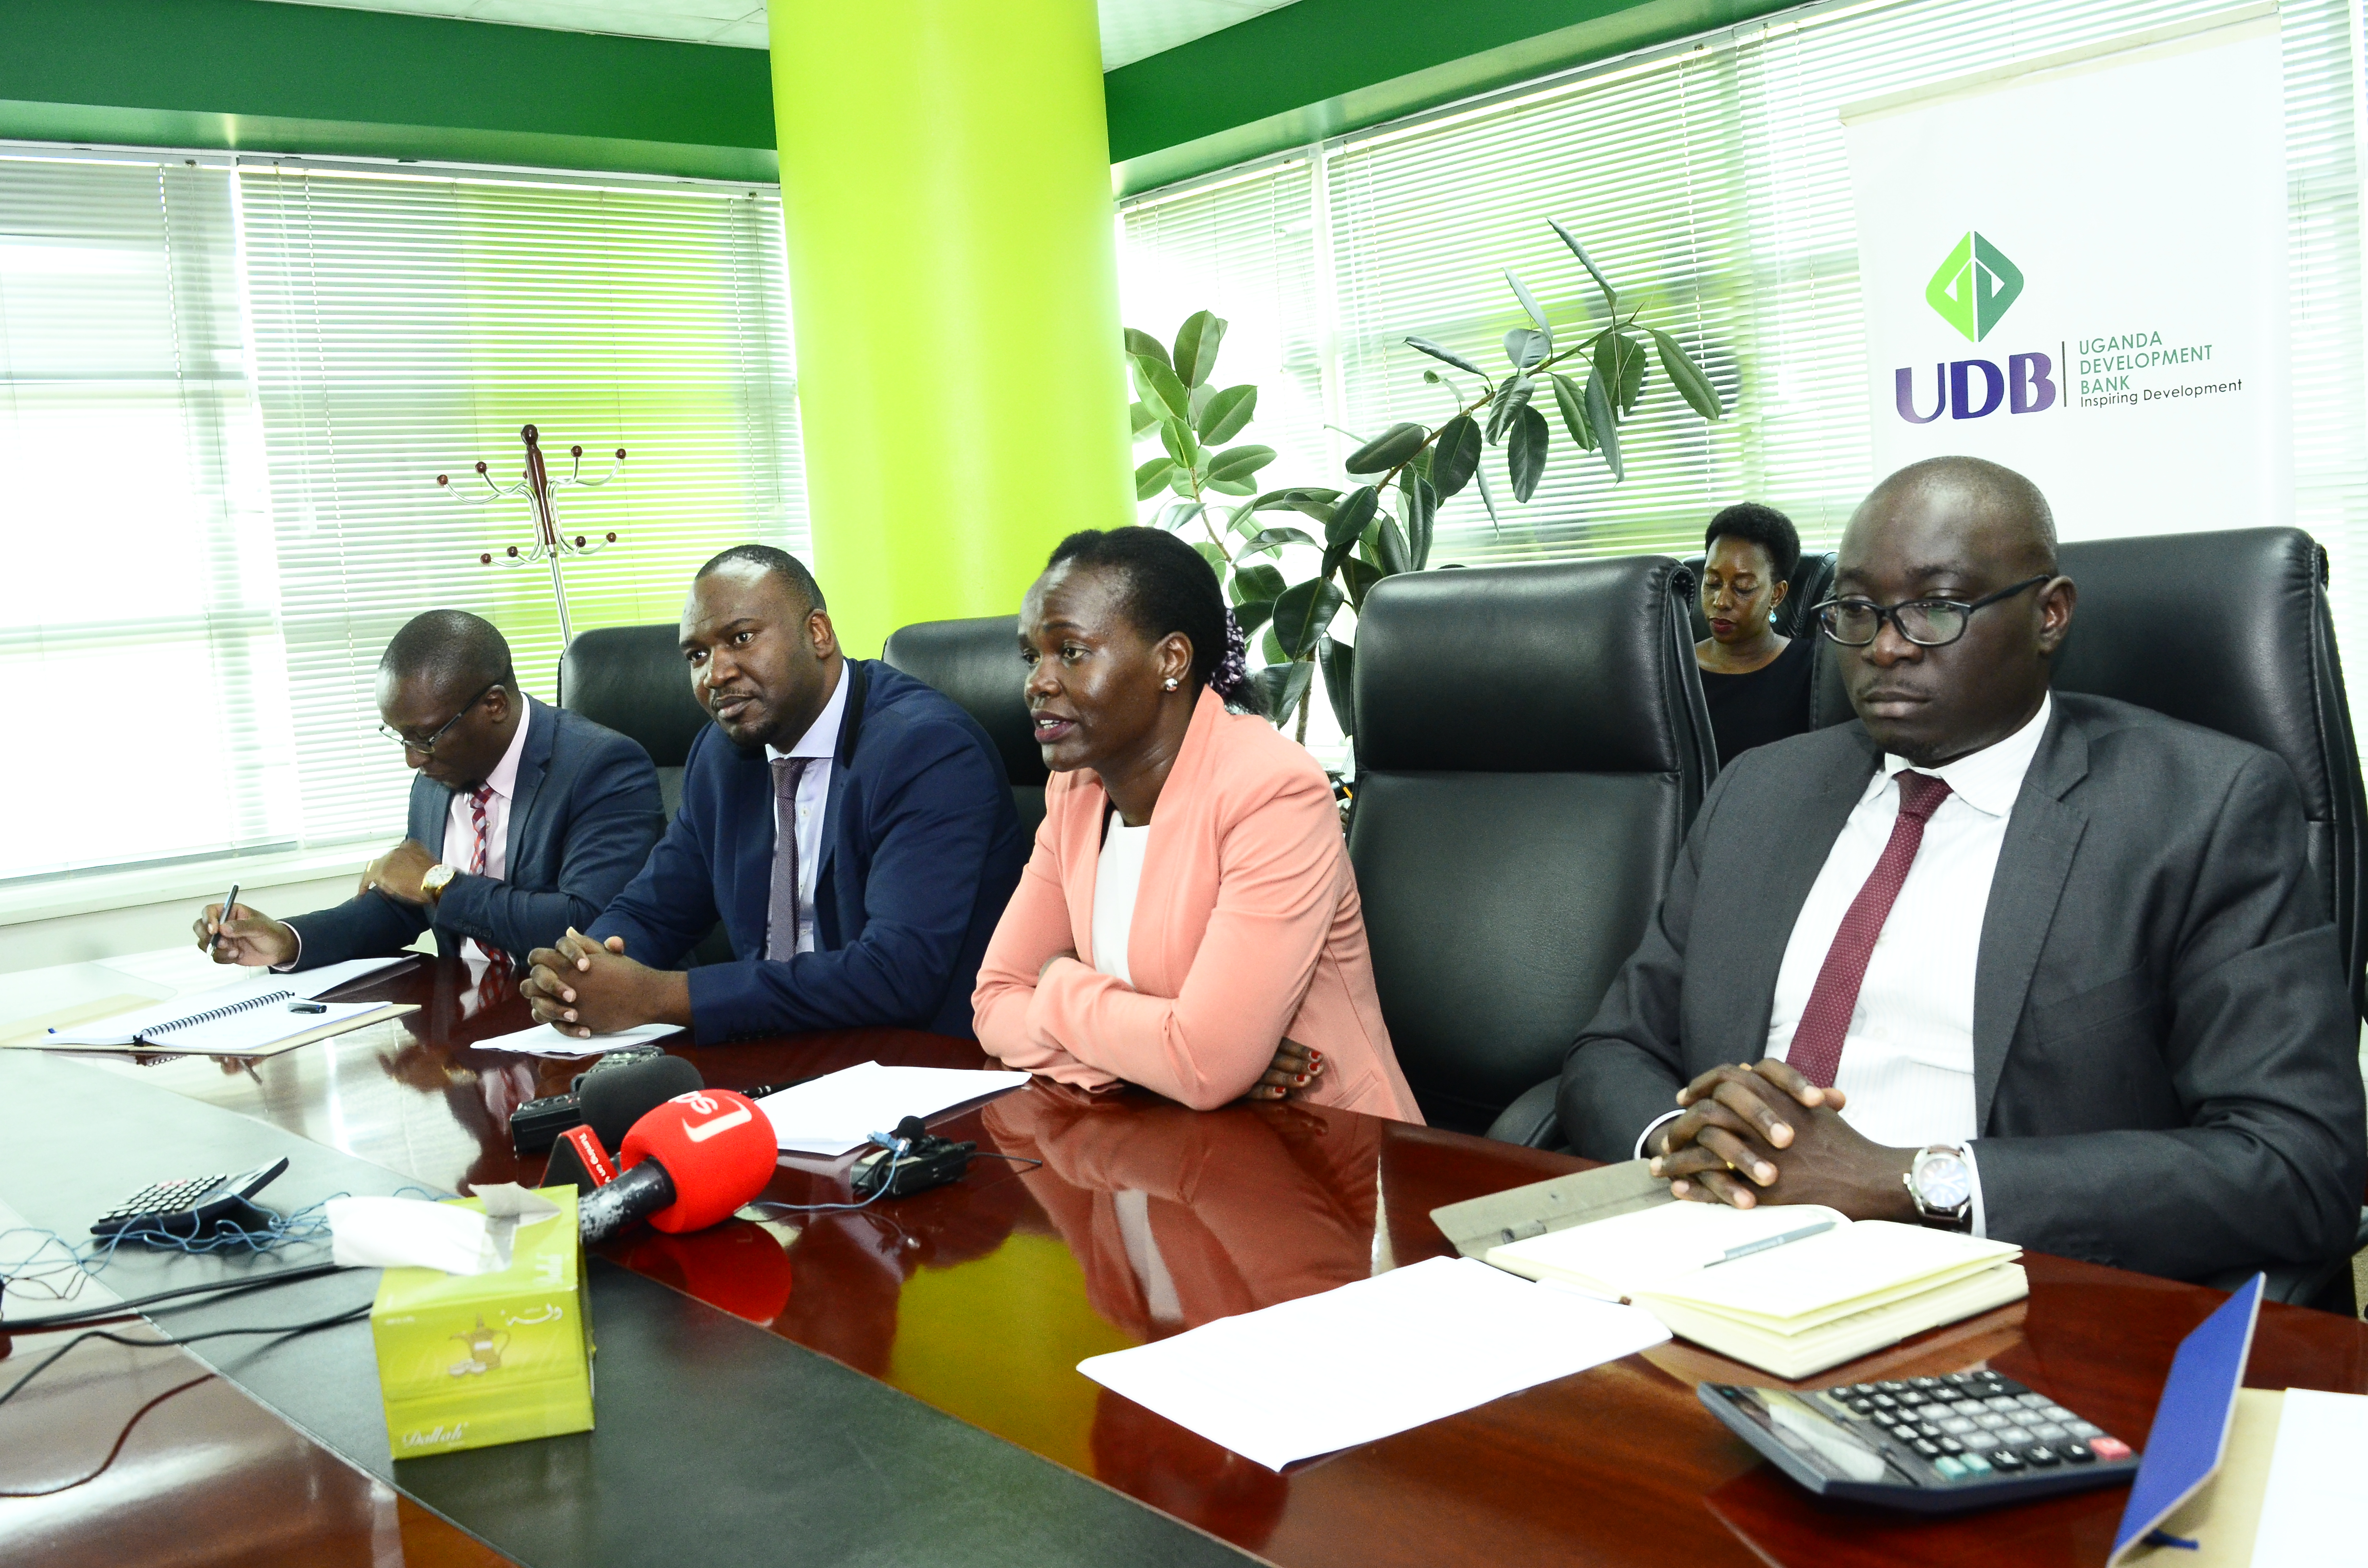 Uganda Development Bank (UDB); Managing Director Patricia Ojangole (2nd from right) makes her remarks during a press brief at the bank's offices in Kampala on Thursday 14th, February 2019.